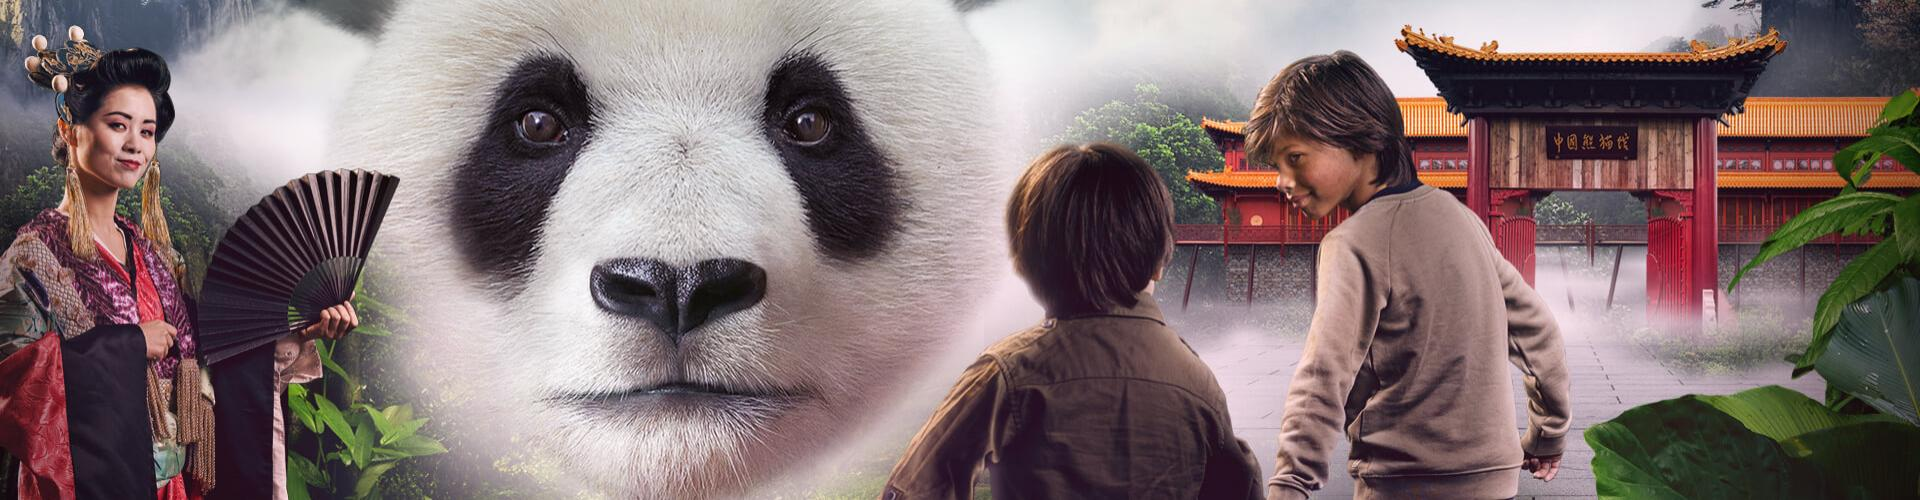 banner Unique in <br> the Netherlands <br> giant pandas